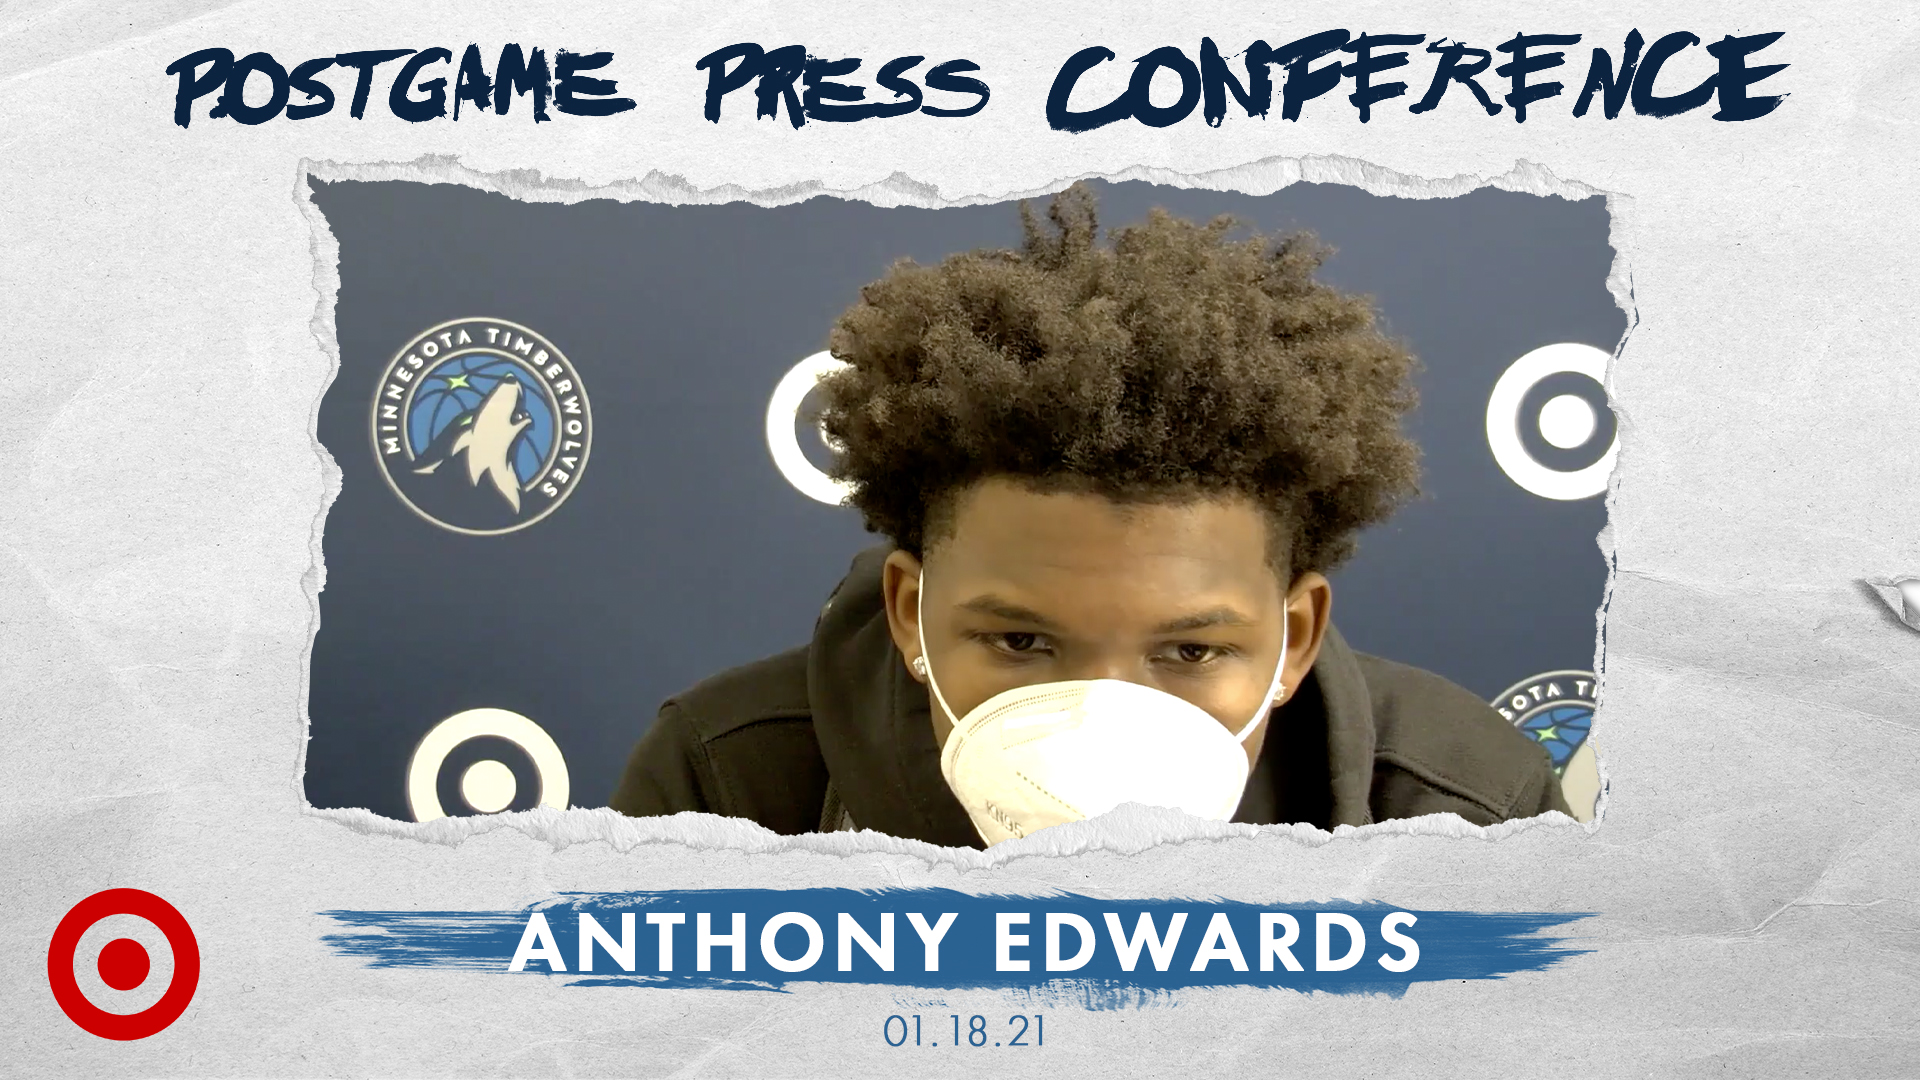 Anthony Edwards Postgame Press Conference - January 18, 2021